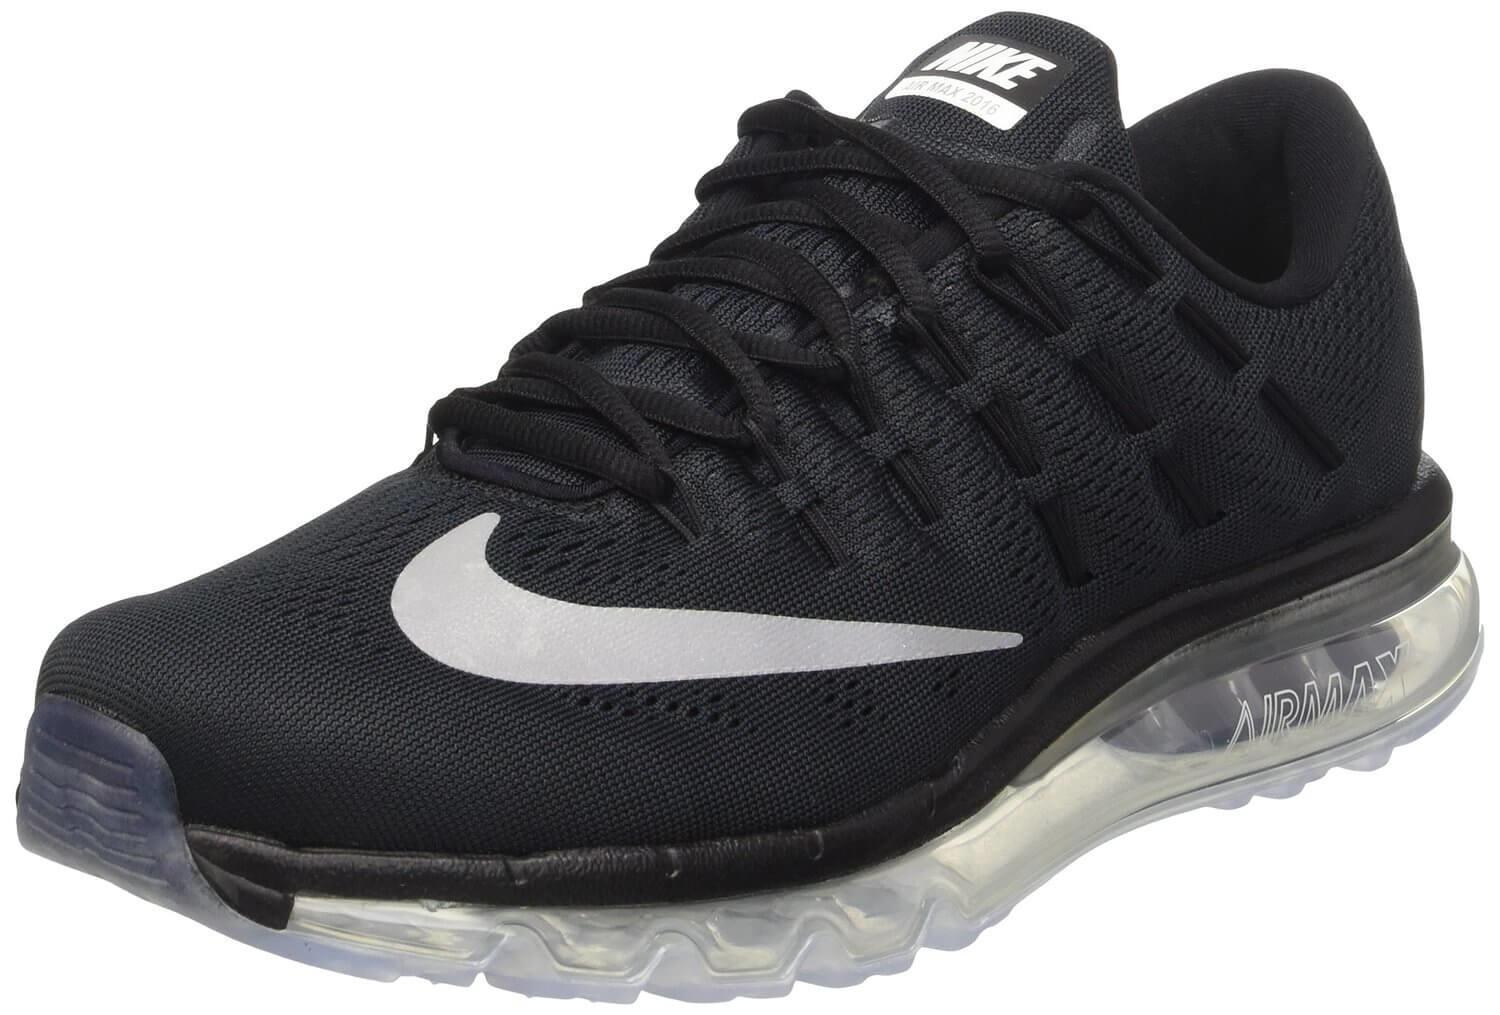 bc9a88ef0b With a simplistic design, the Nike Air Max 2016 is still a very stylish  shoe ...